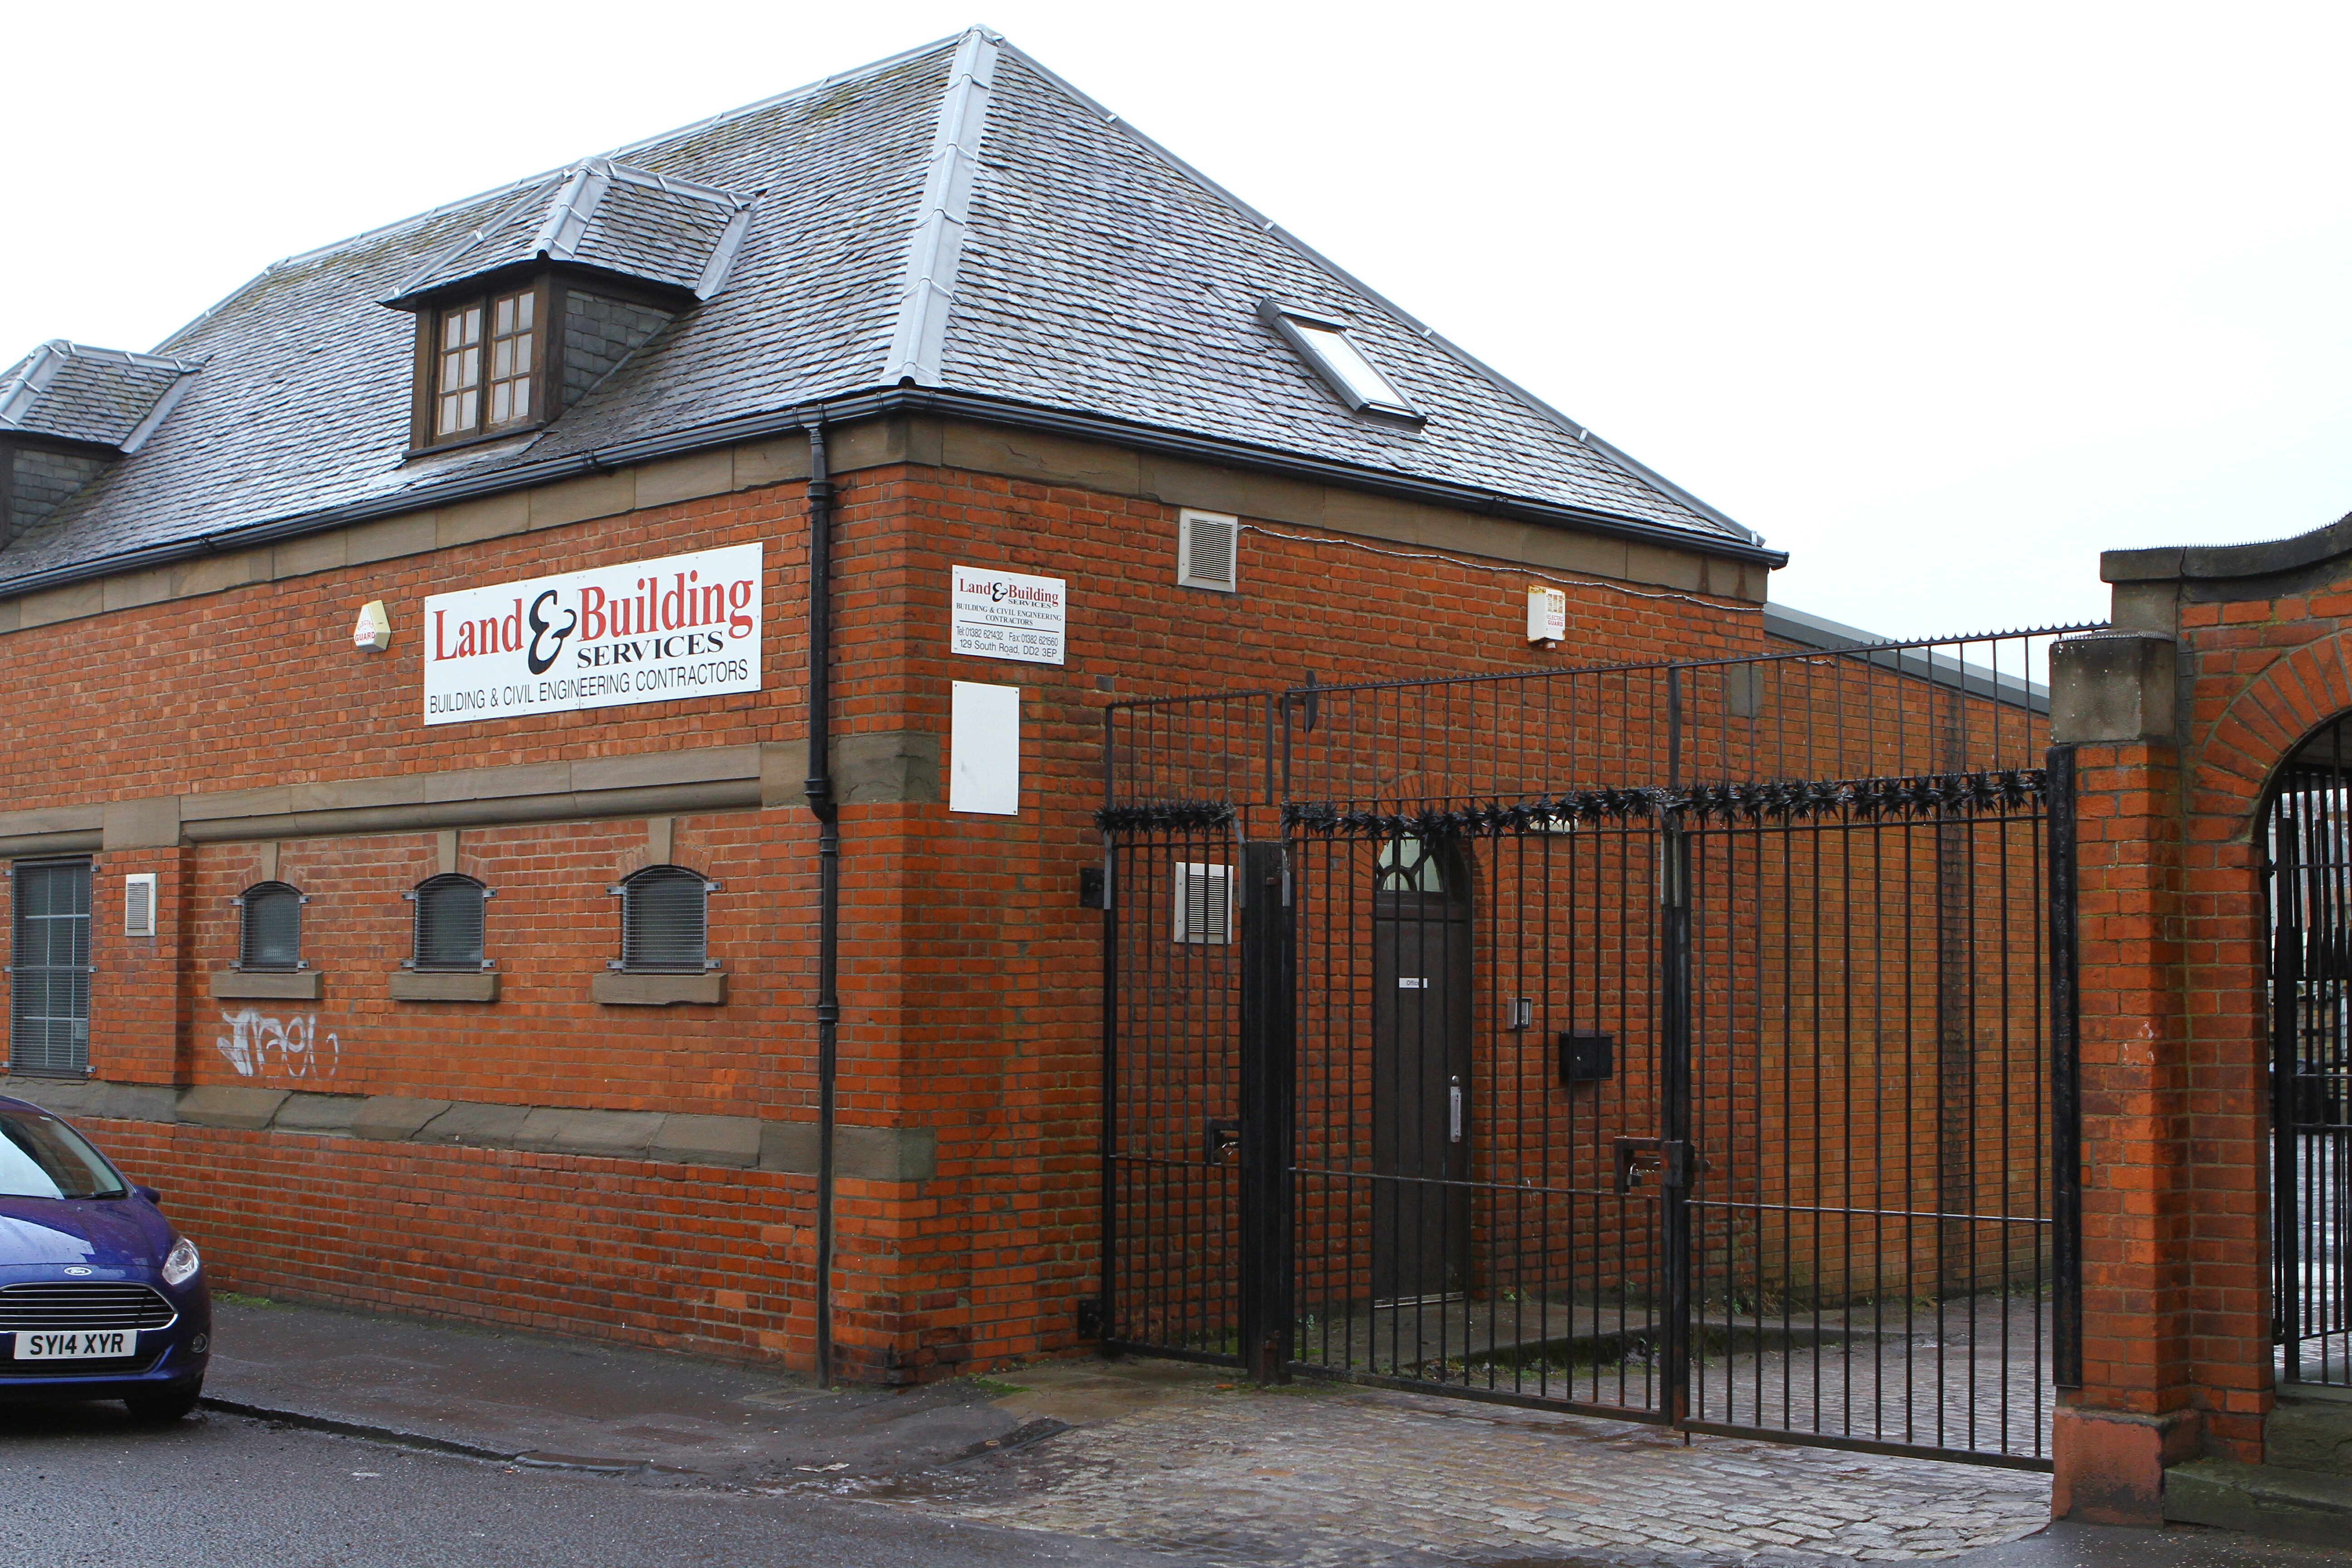 The premises of Land & Building Services on South Road.